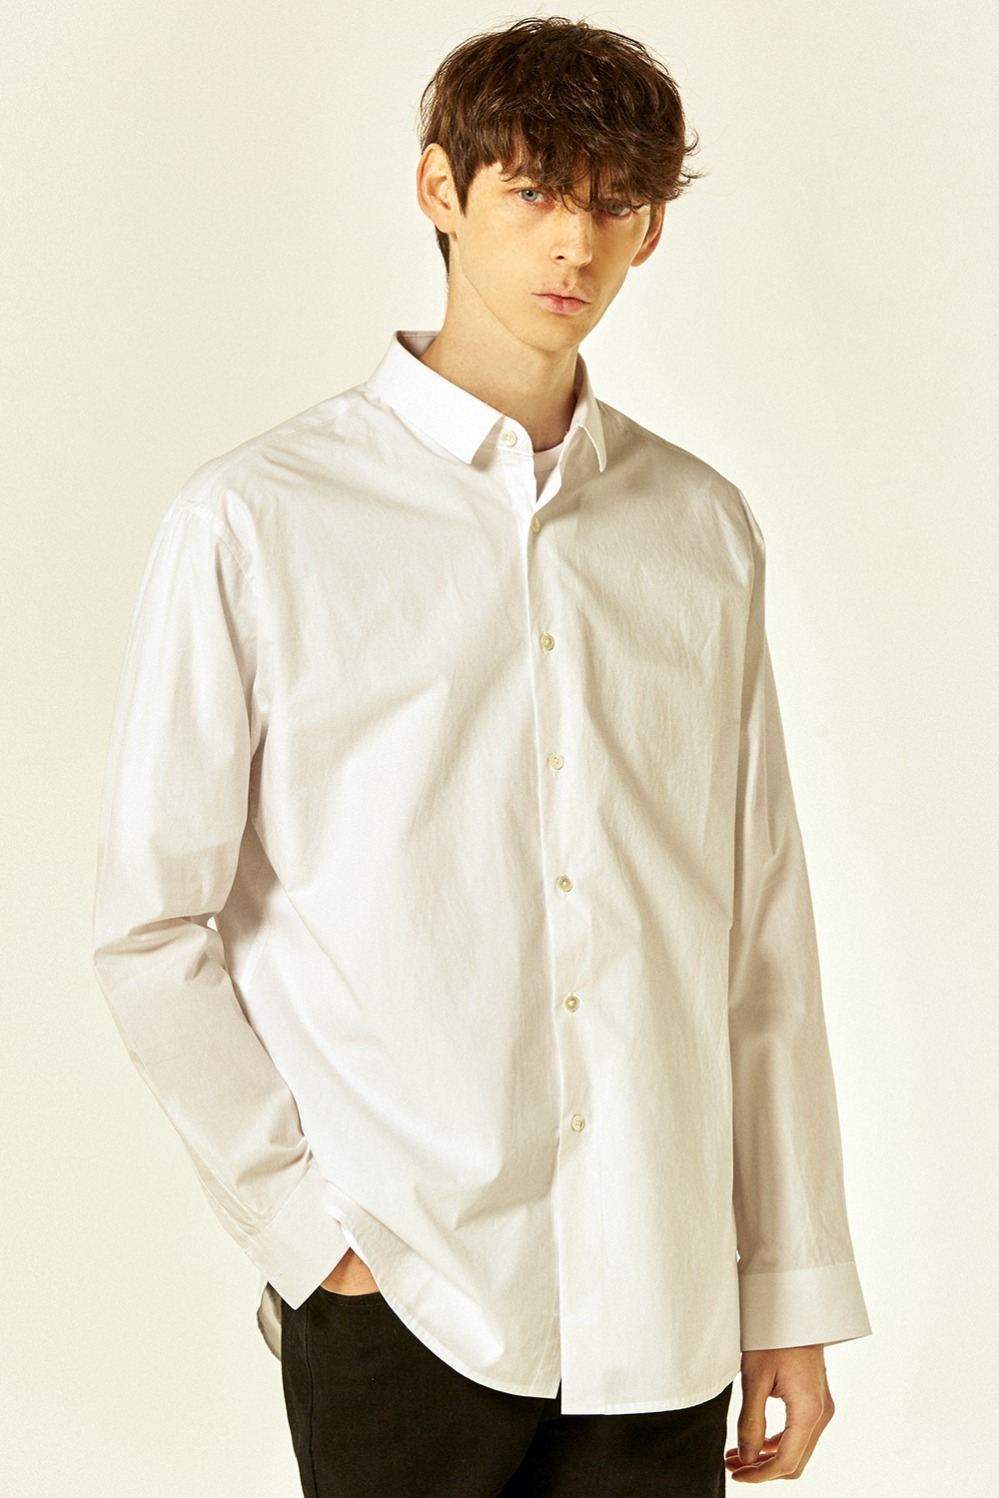 Solid Basic Shirts (White)